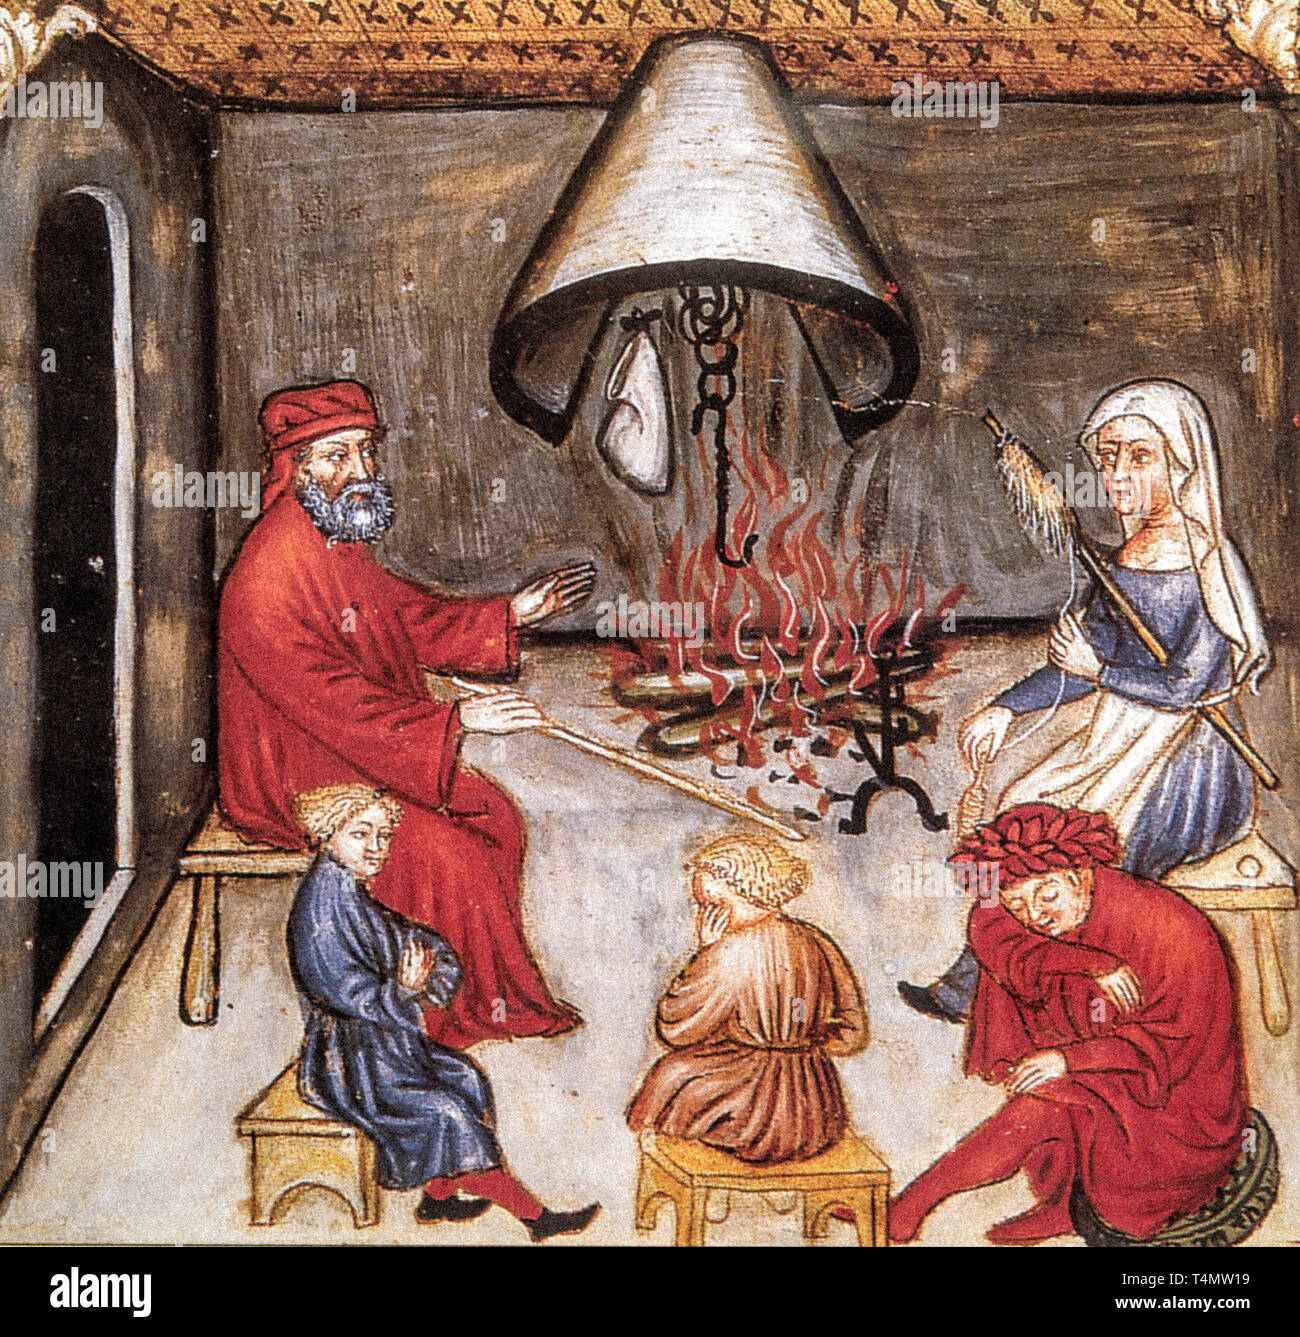 Confabuator - In the Middle Ages the Confabuator was the person who told stories. In this scene the lady spins the wool while listening, two of the boys are about to fall asleep, while one mimics the scenes of the story - Stock Image